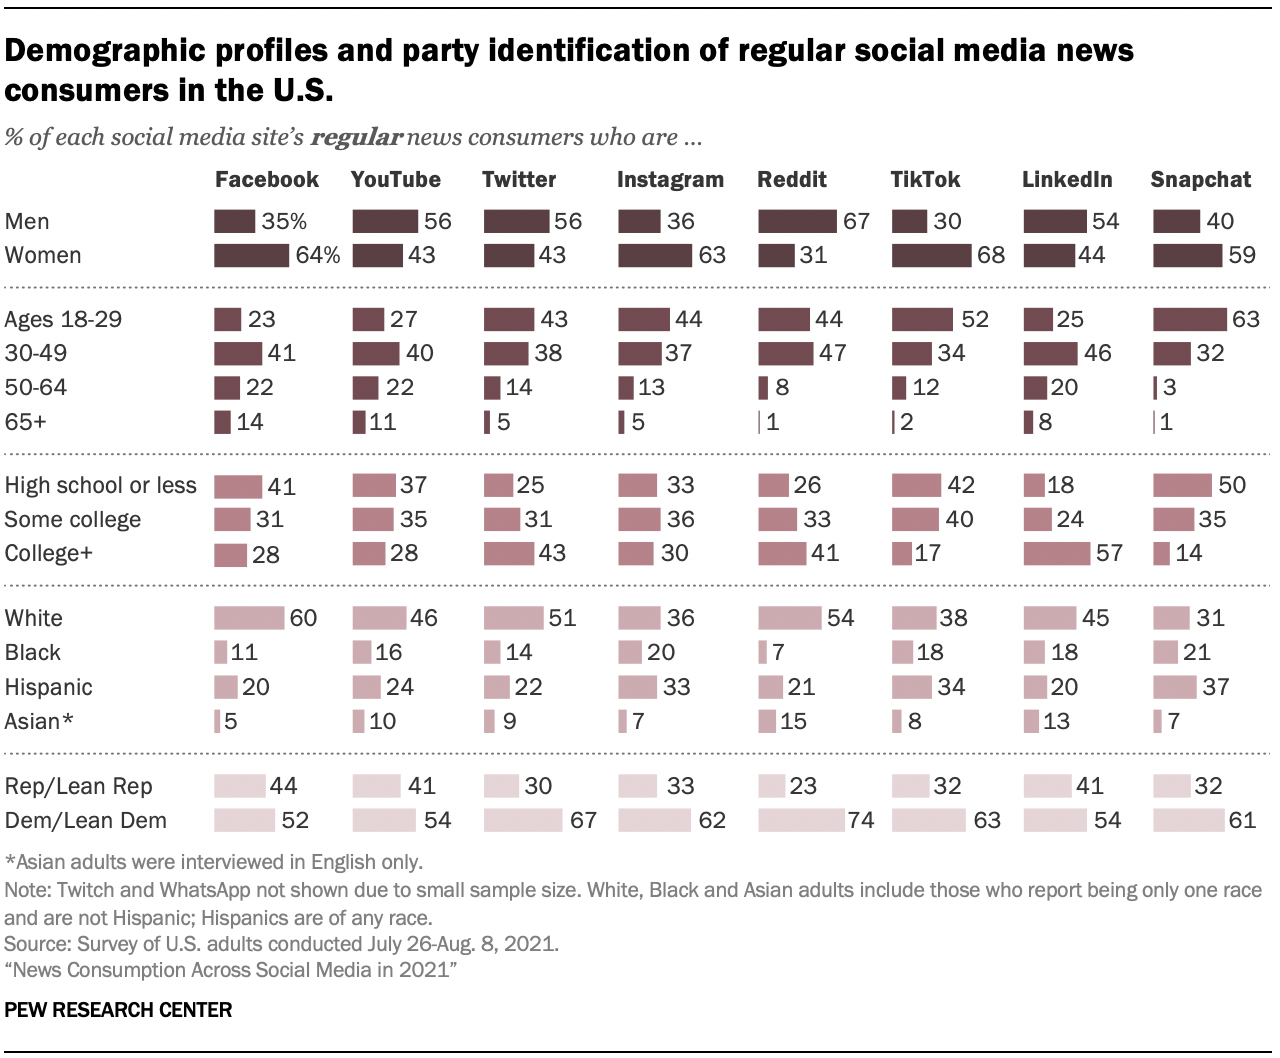 Demographic profiles and party identification of regular social media news consumers in the U.S.